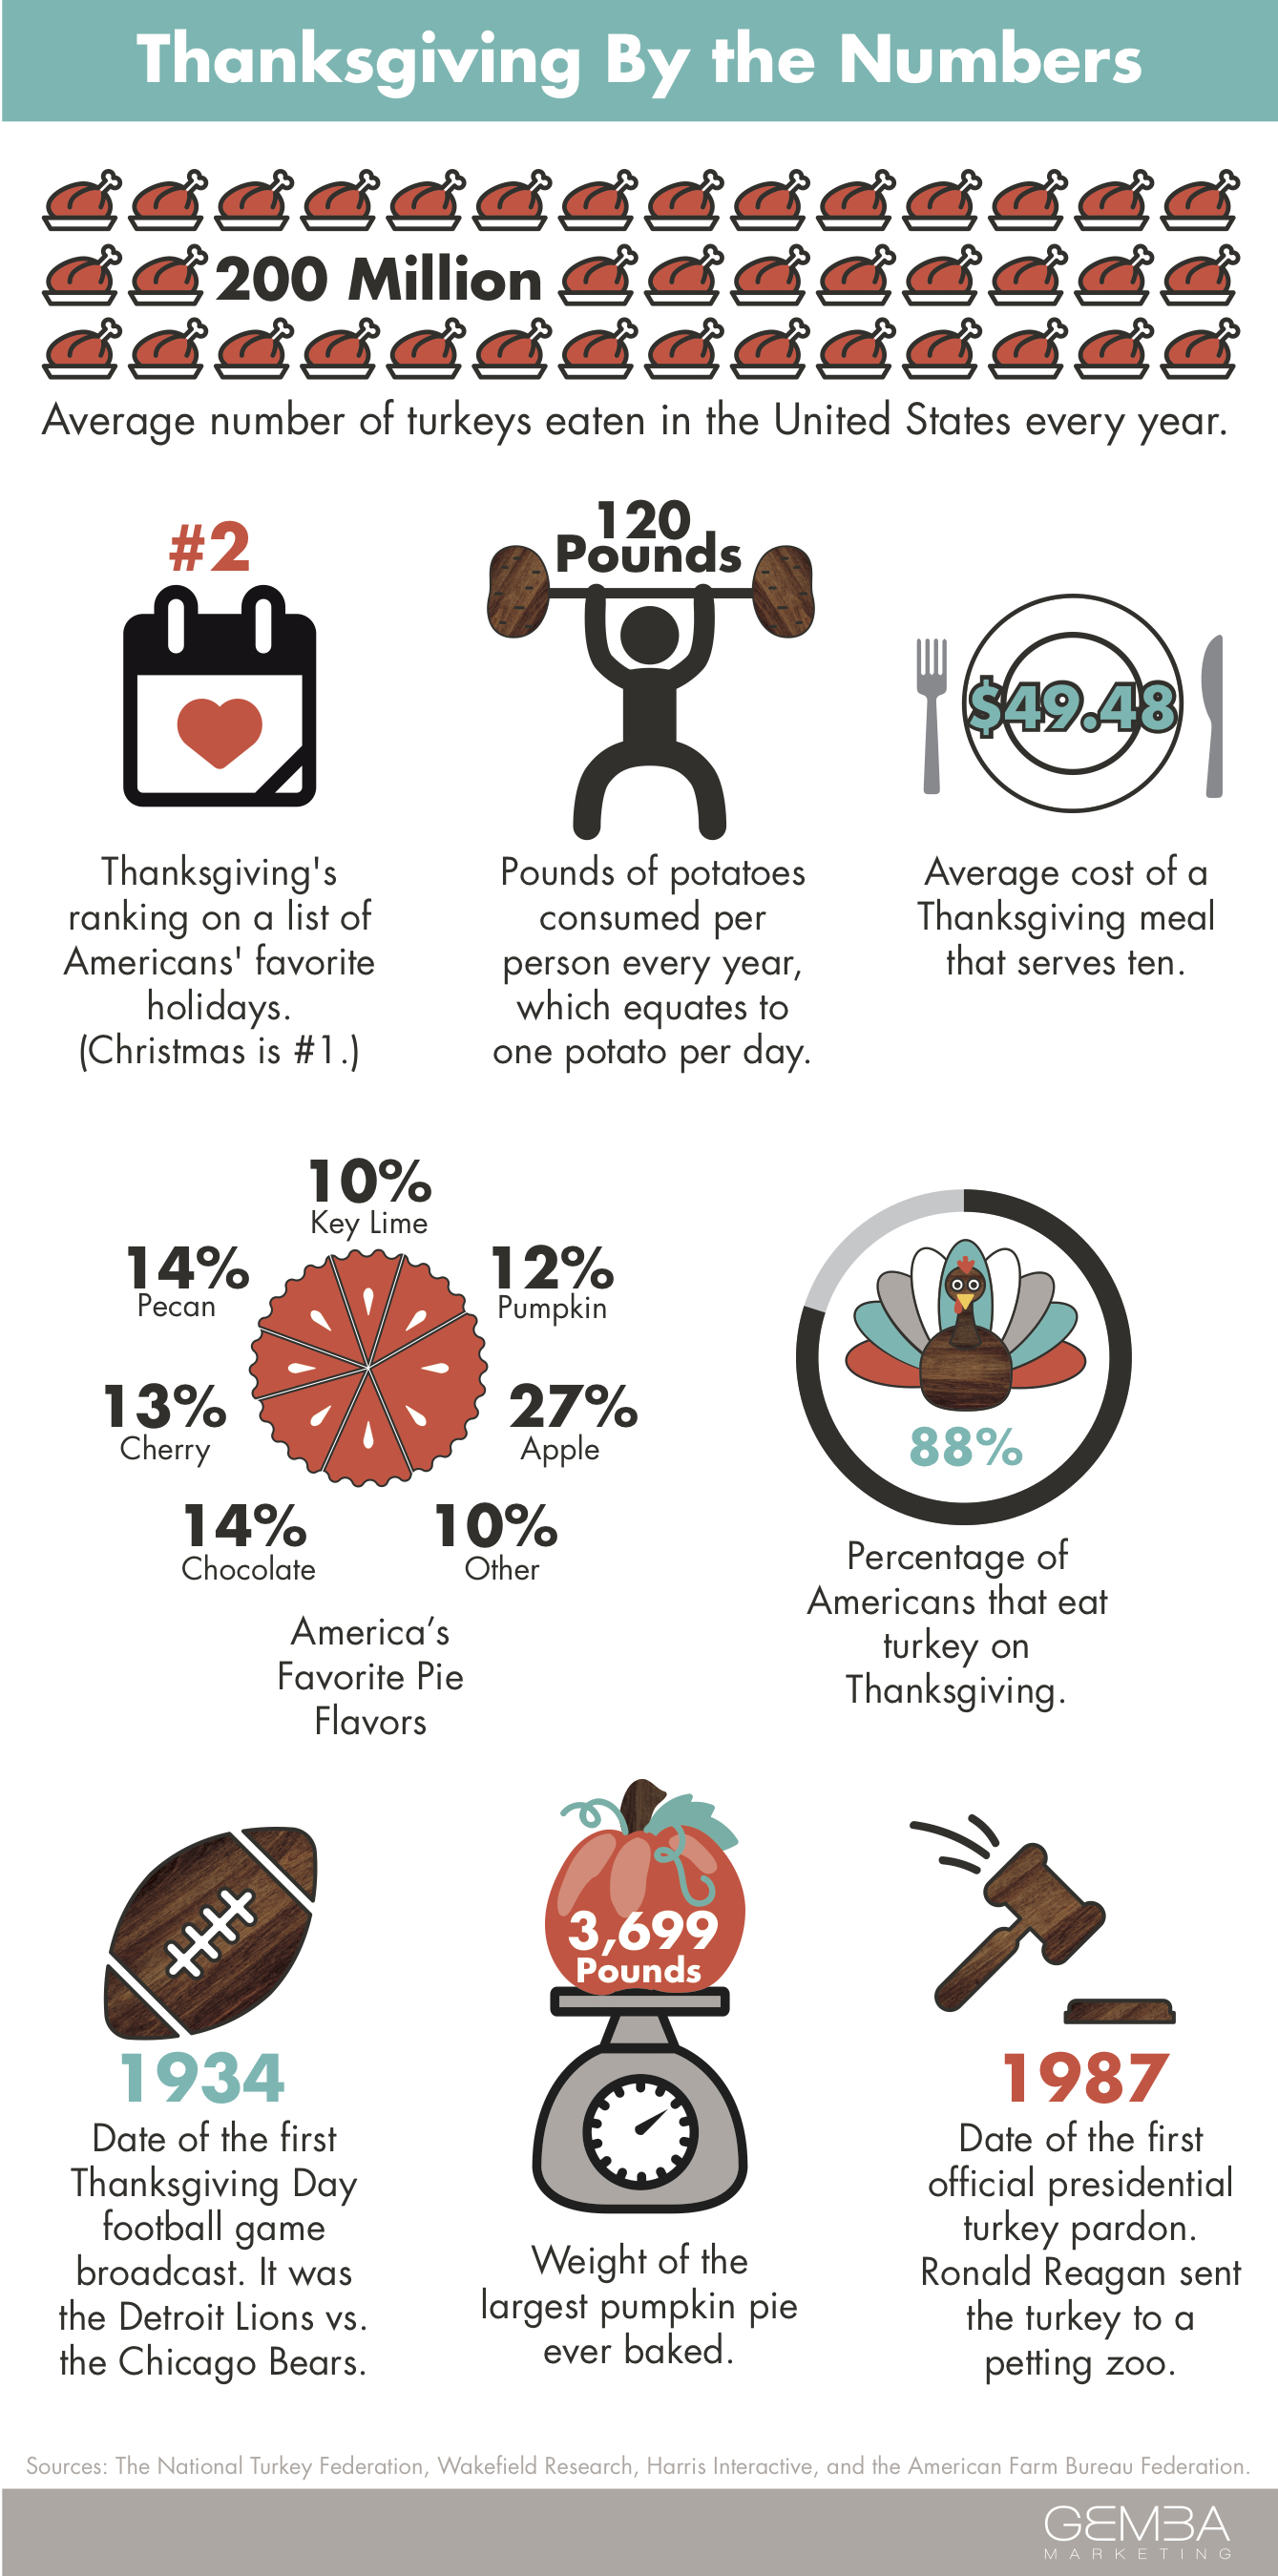 ThanksGivingByTheNumbers